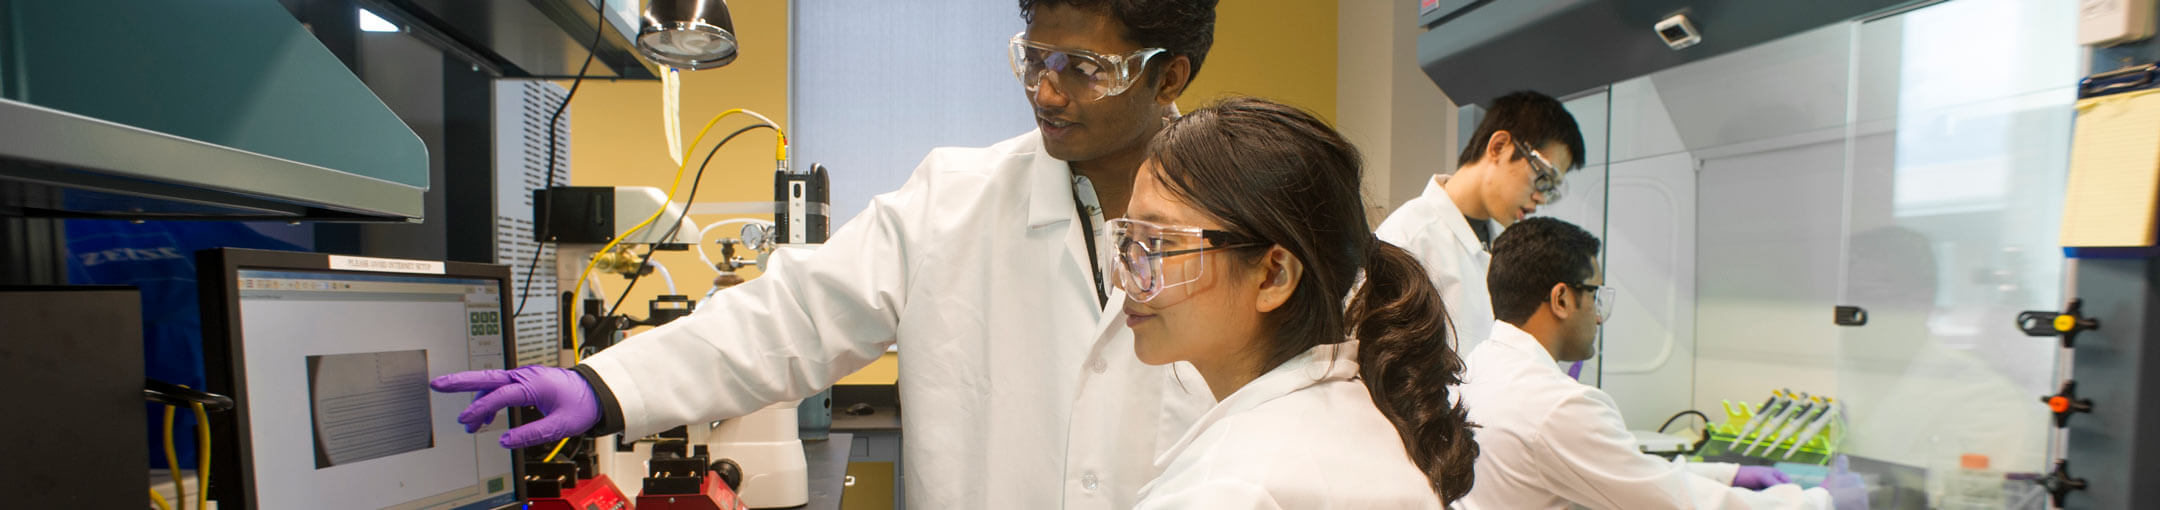 Students work in a lab. The two foreground students are looking at a computer monitor.